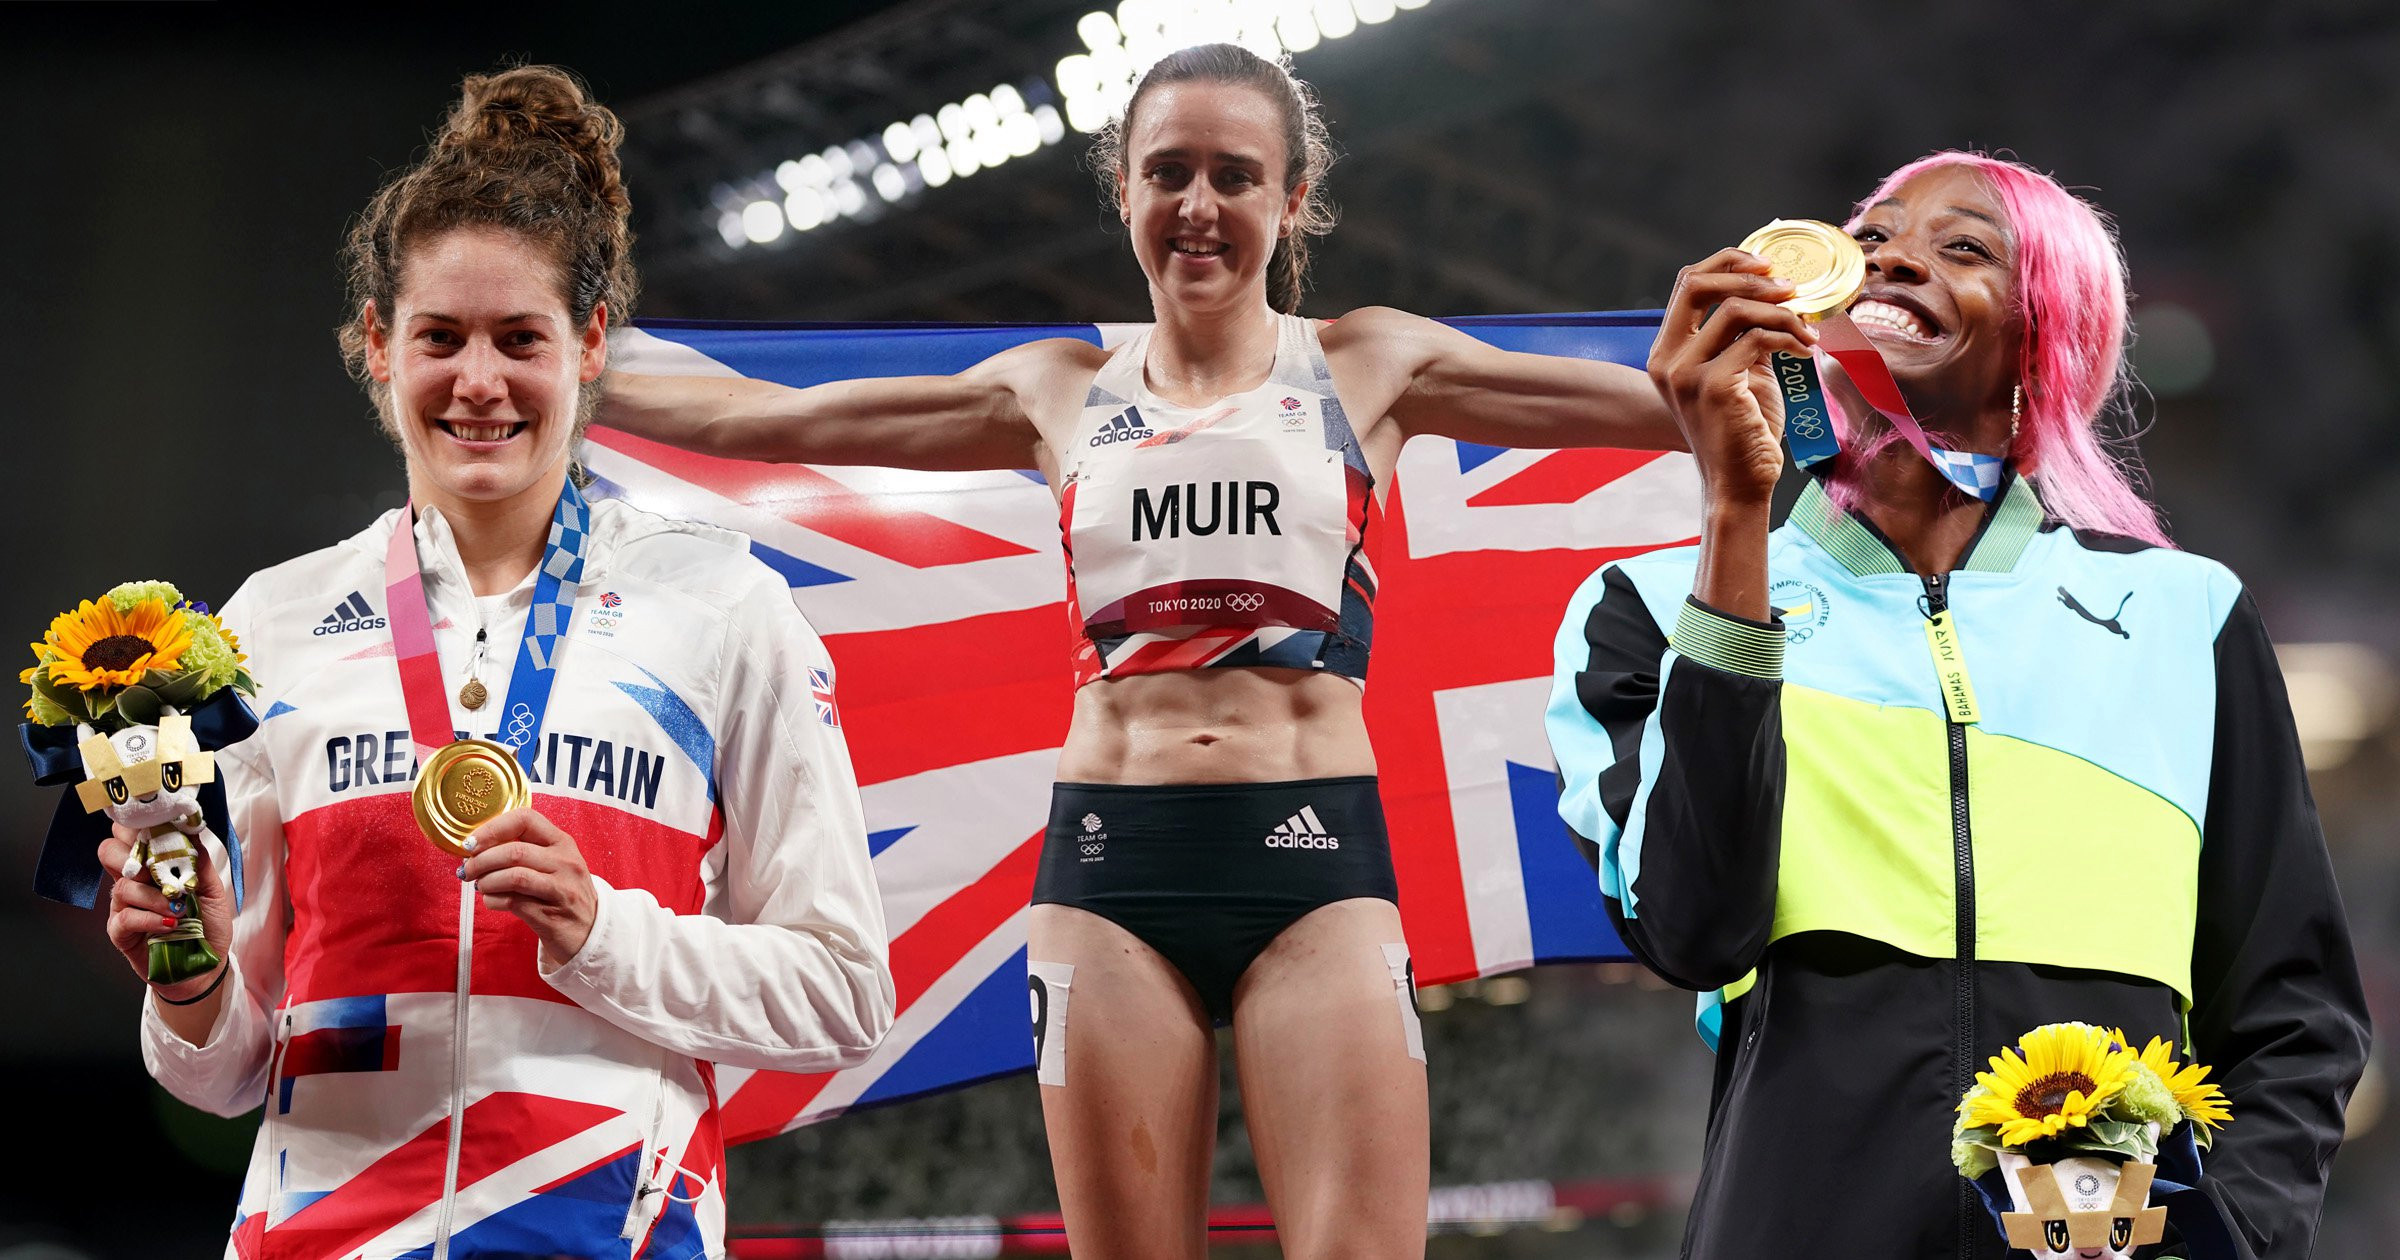 Tokyo 2020 Day 14 Highlights: Laura Muir wins 1500m silver, Shaunae Miller-Uibo claims 400m gold, Team GB relay medals